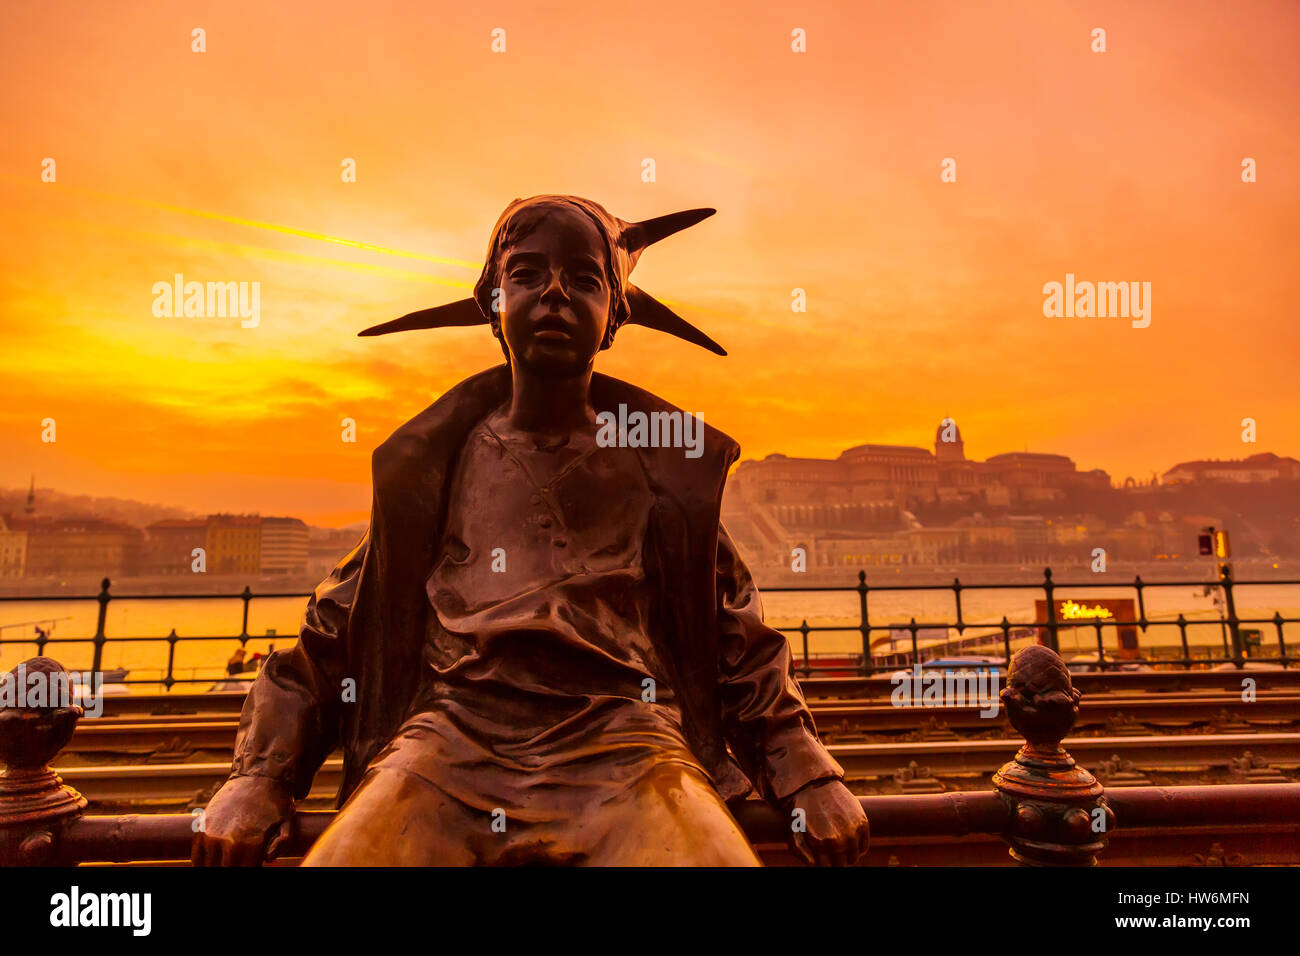 Harlequin statue near the Danube at sunset. Budapest Hungary, Southeast Europe - Stock Image